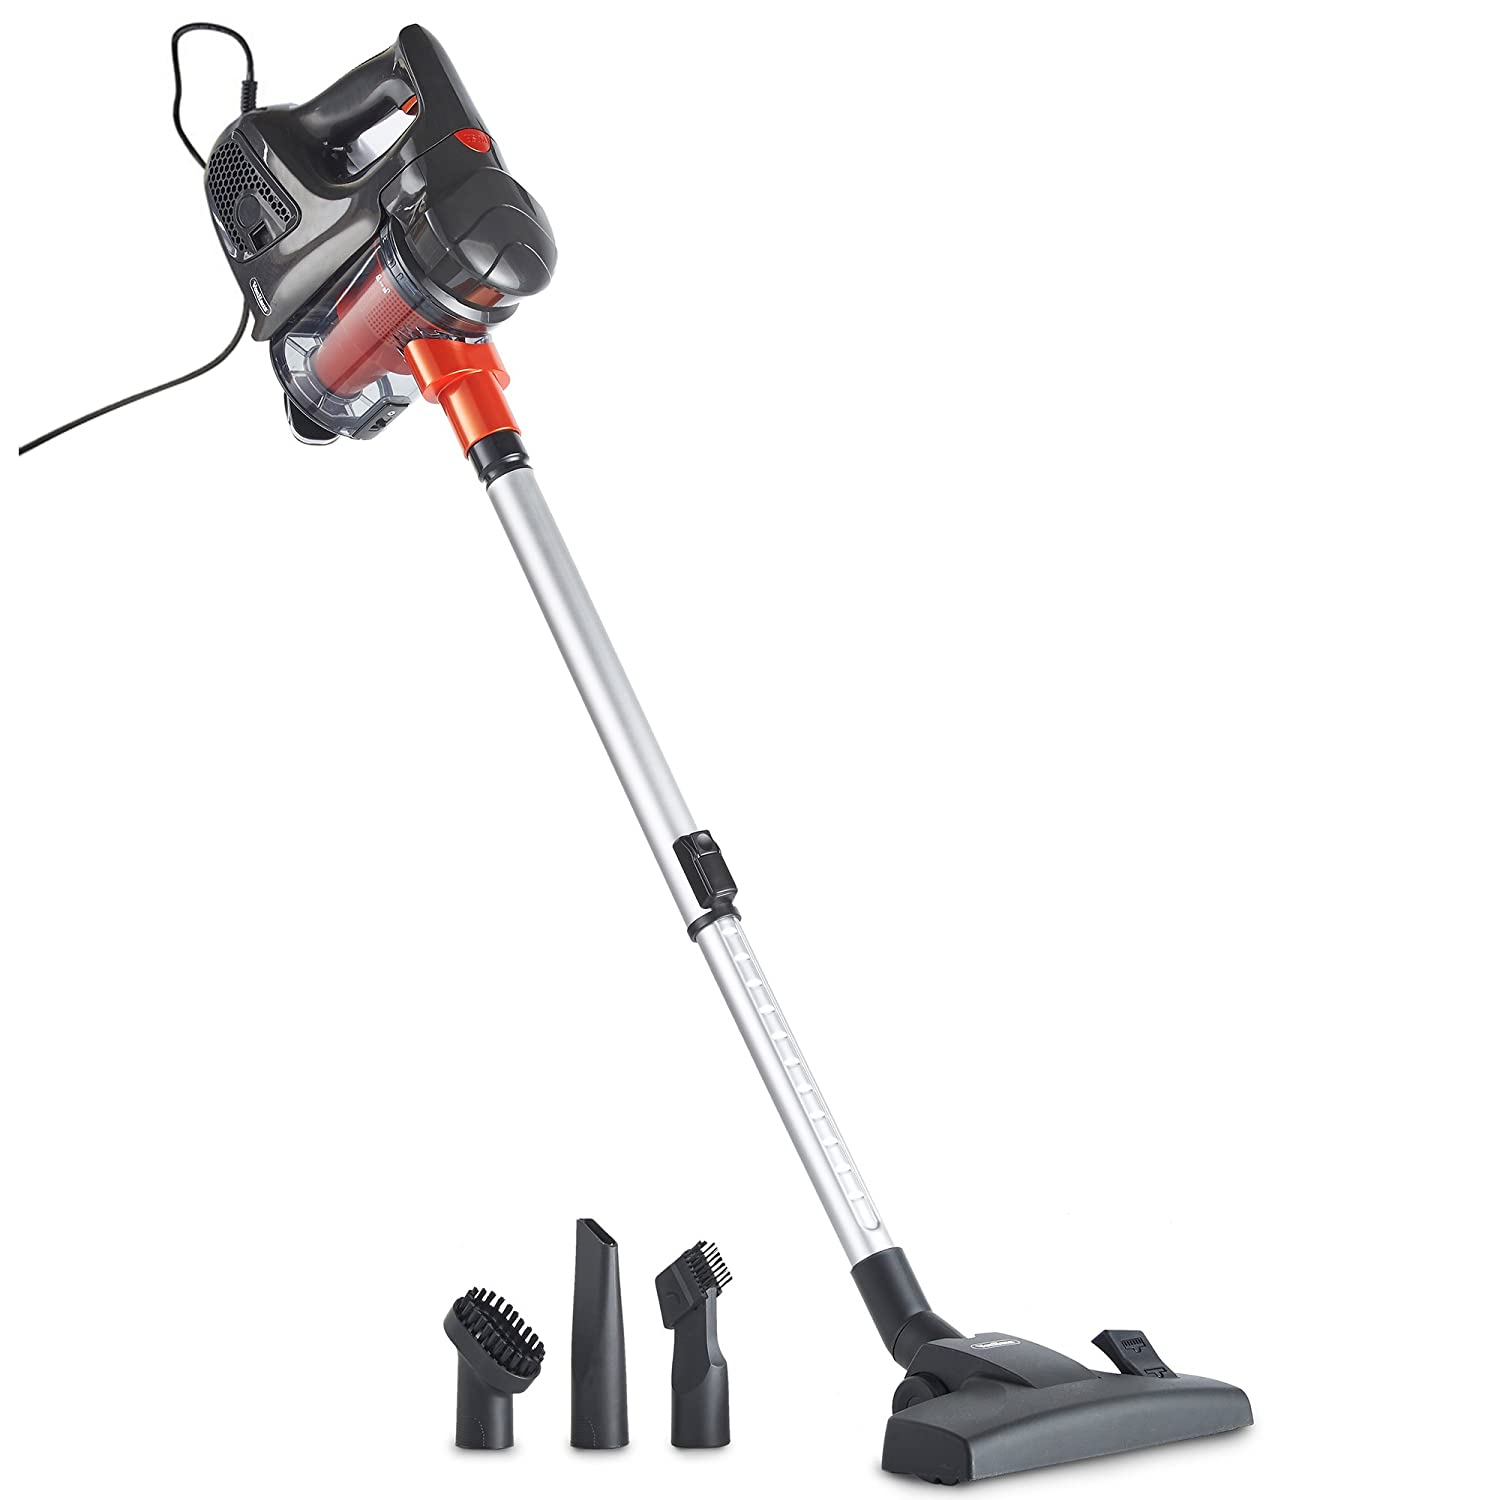 Vacuum cleaner PUPPYOO WP526-C: review of parameters, owner reviews, comparison with competitors 17